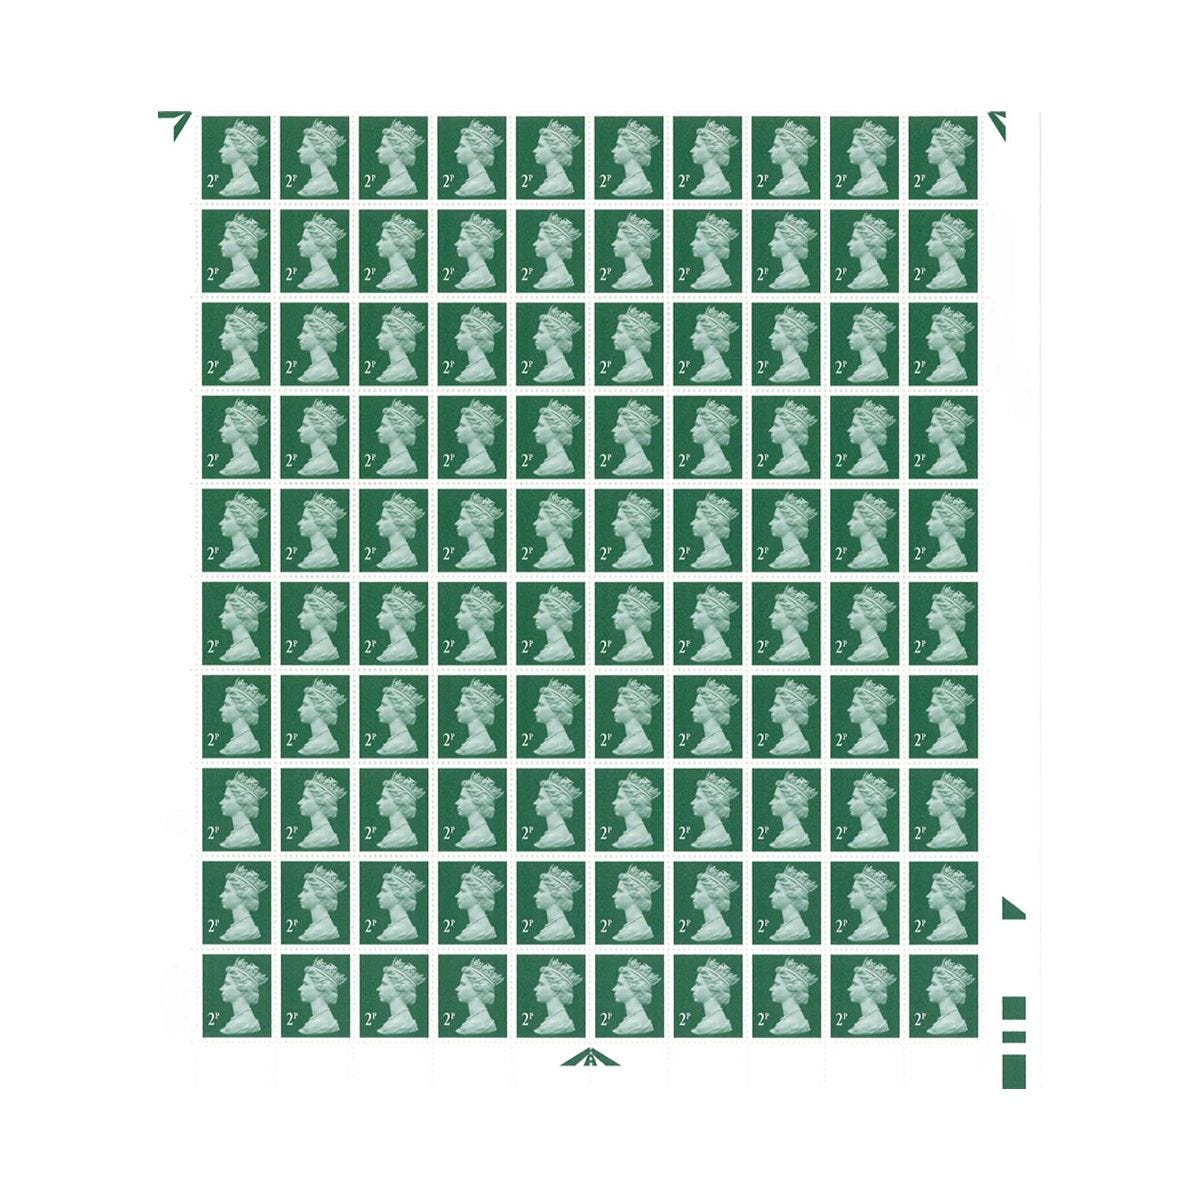 Image of 2p Postage Stamps Sheet of 100 *